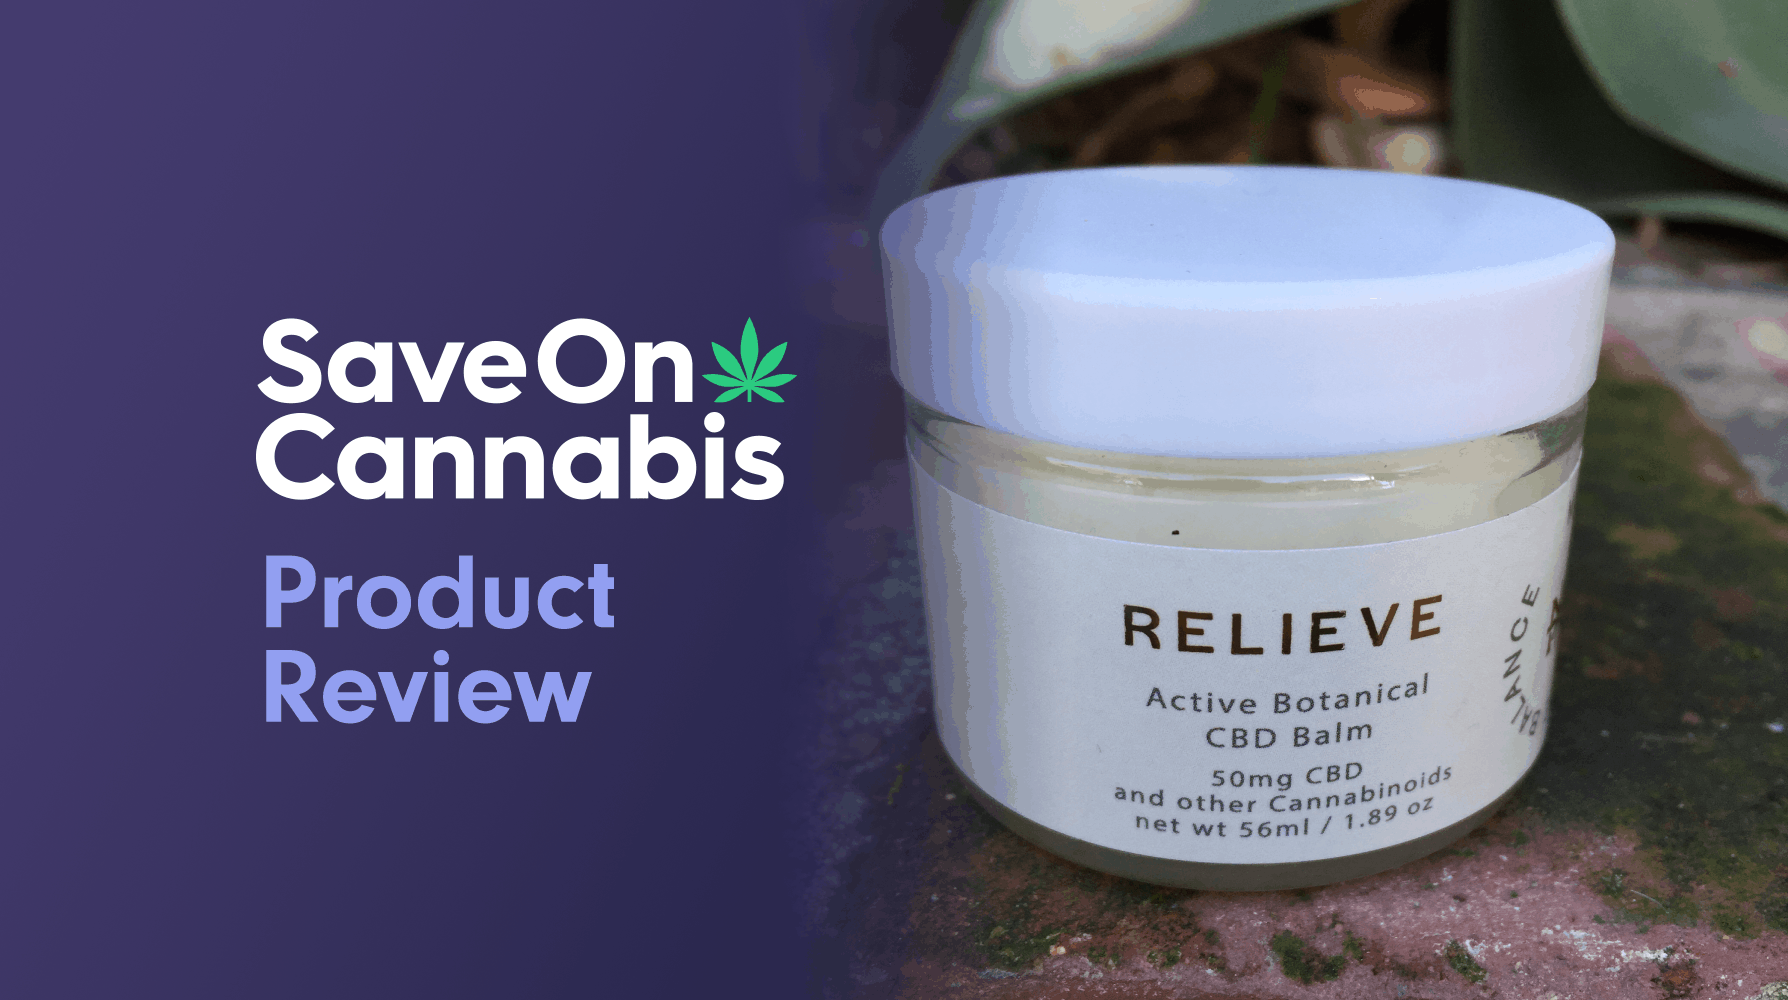 meridian life balance active botanical cbd balm save on cannabis website